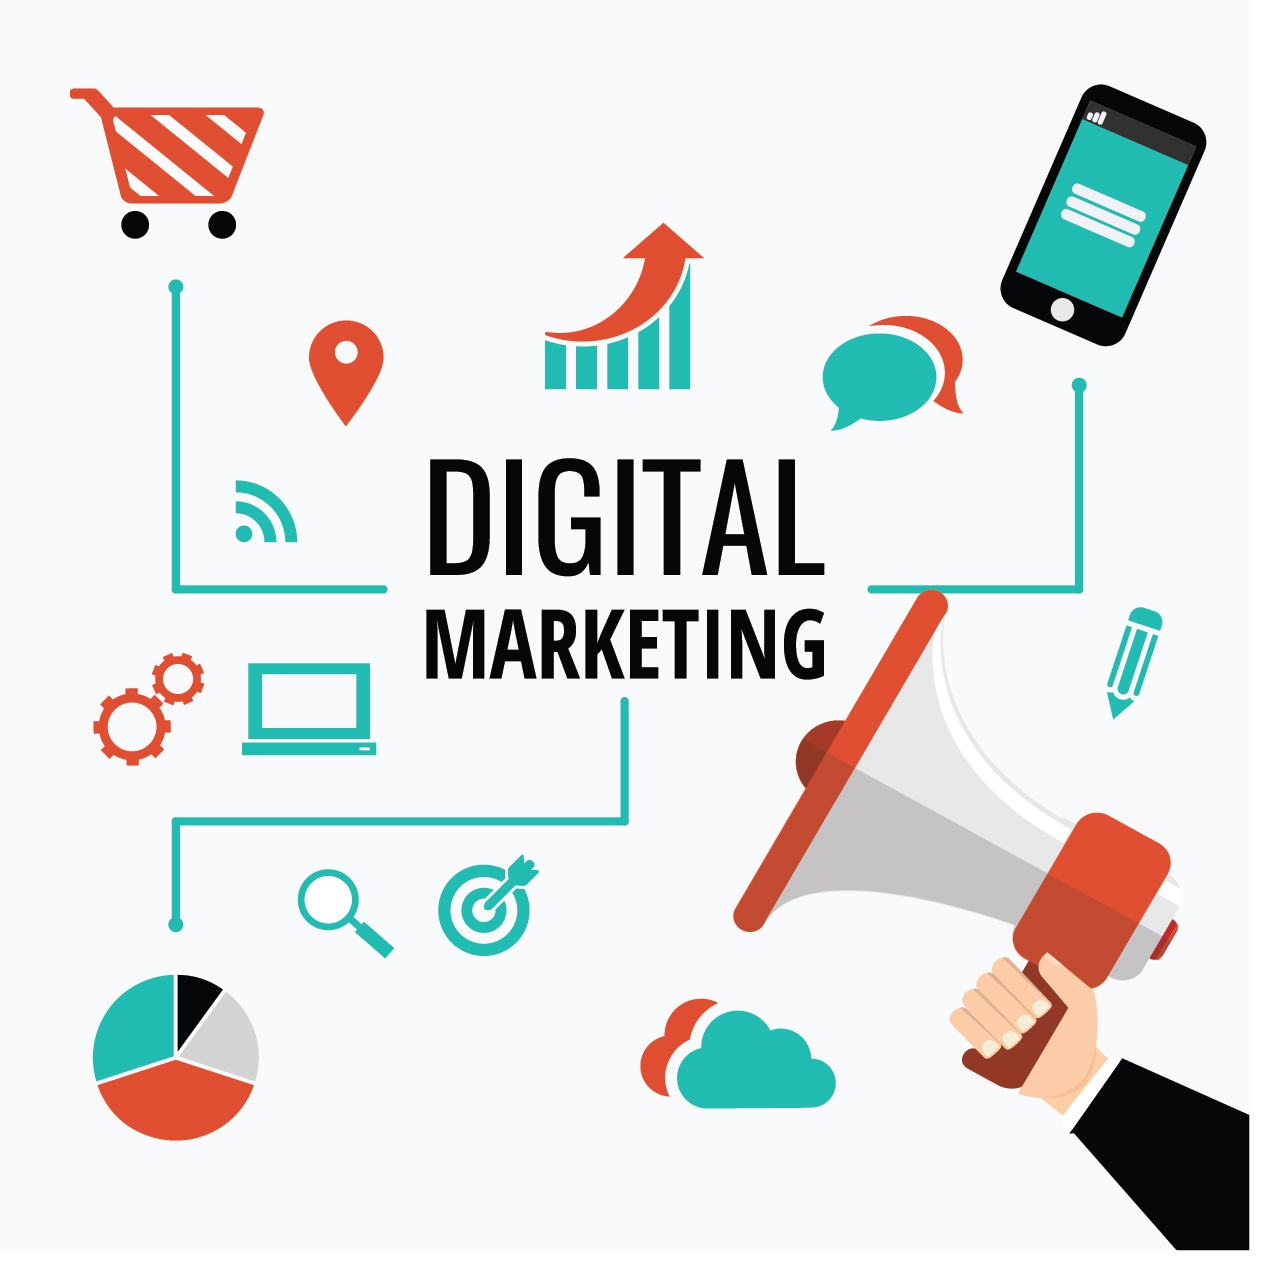 Digital Marketing là gì ? - GAJA.vn